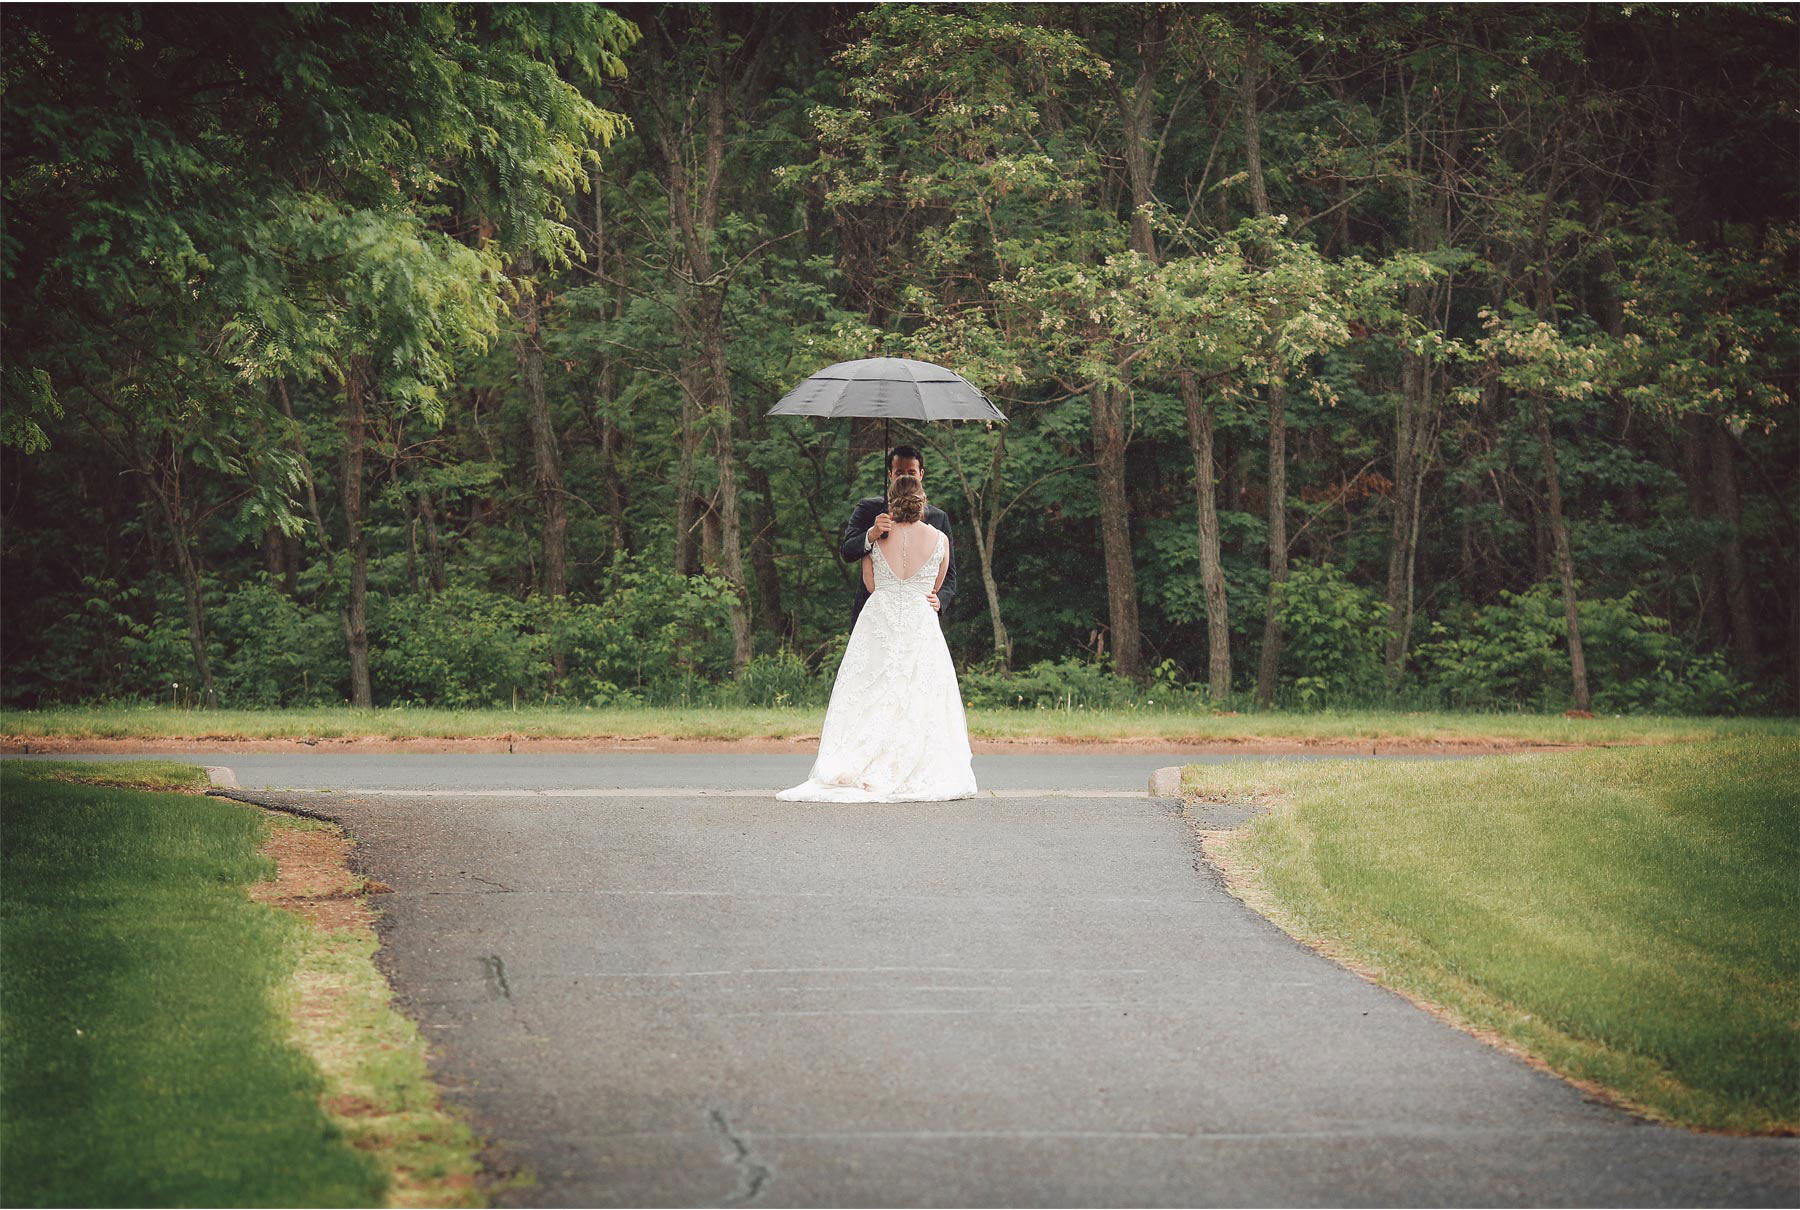 03-River-Falls-Wisconsin-Wedding-Photography-by-Vick-Photography-First-Look-Rain-Umbrella-Britty-and-Tyler.jpg